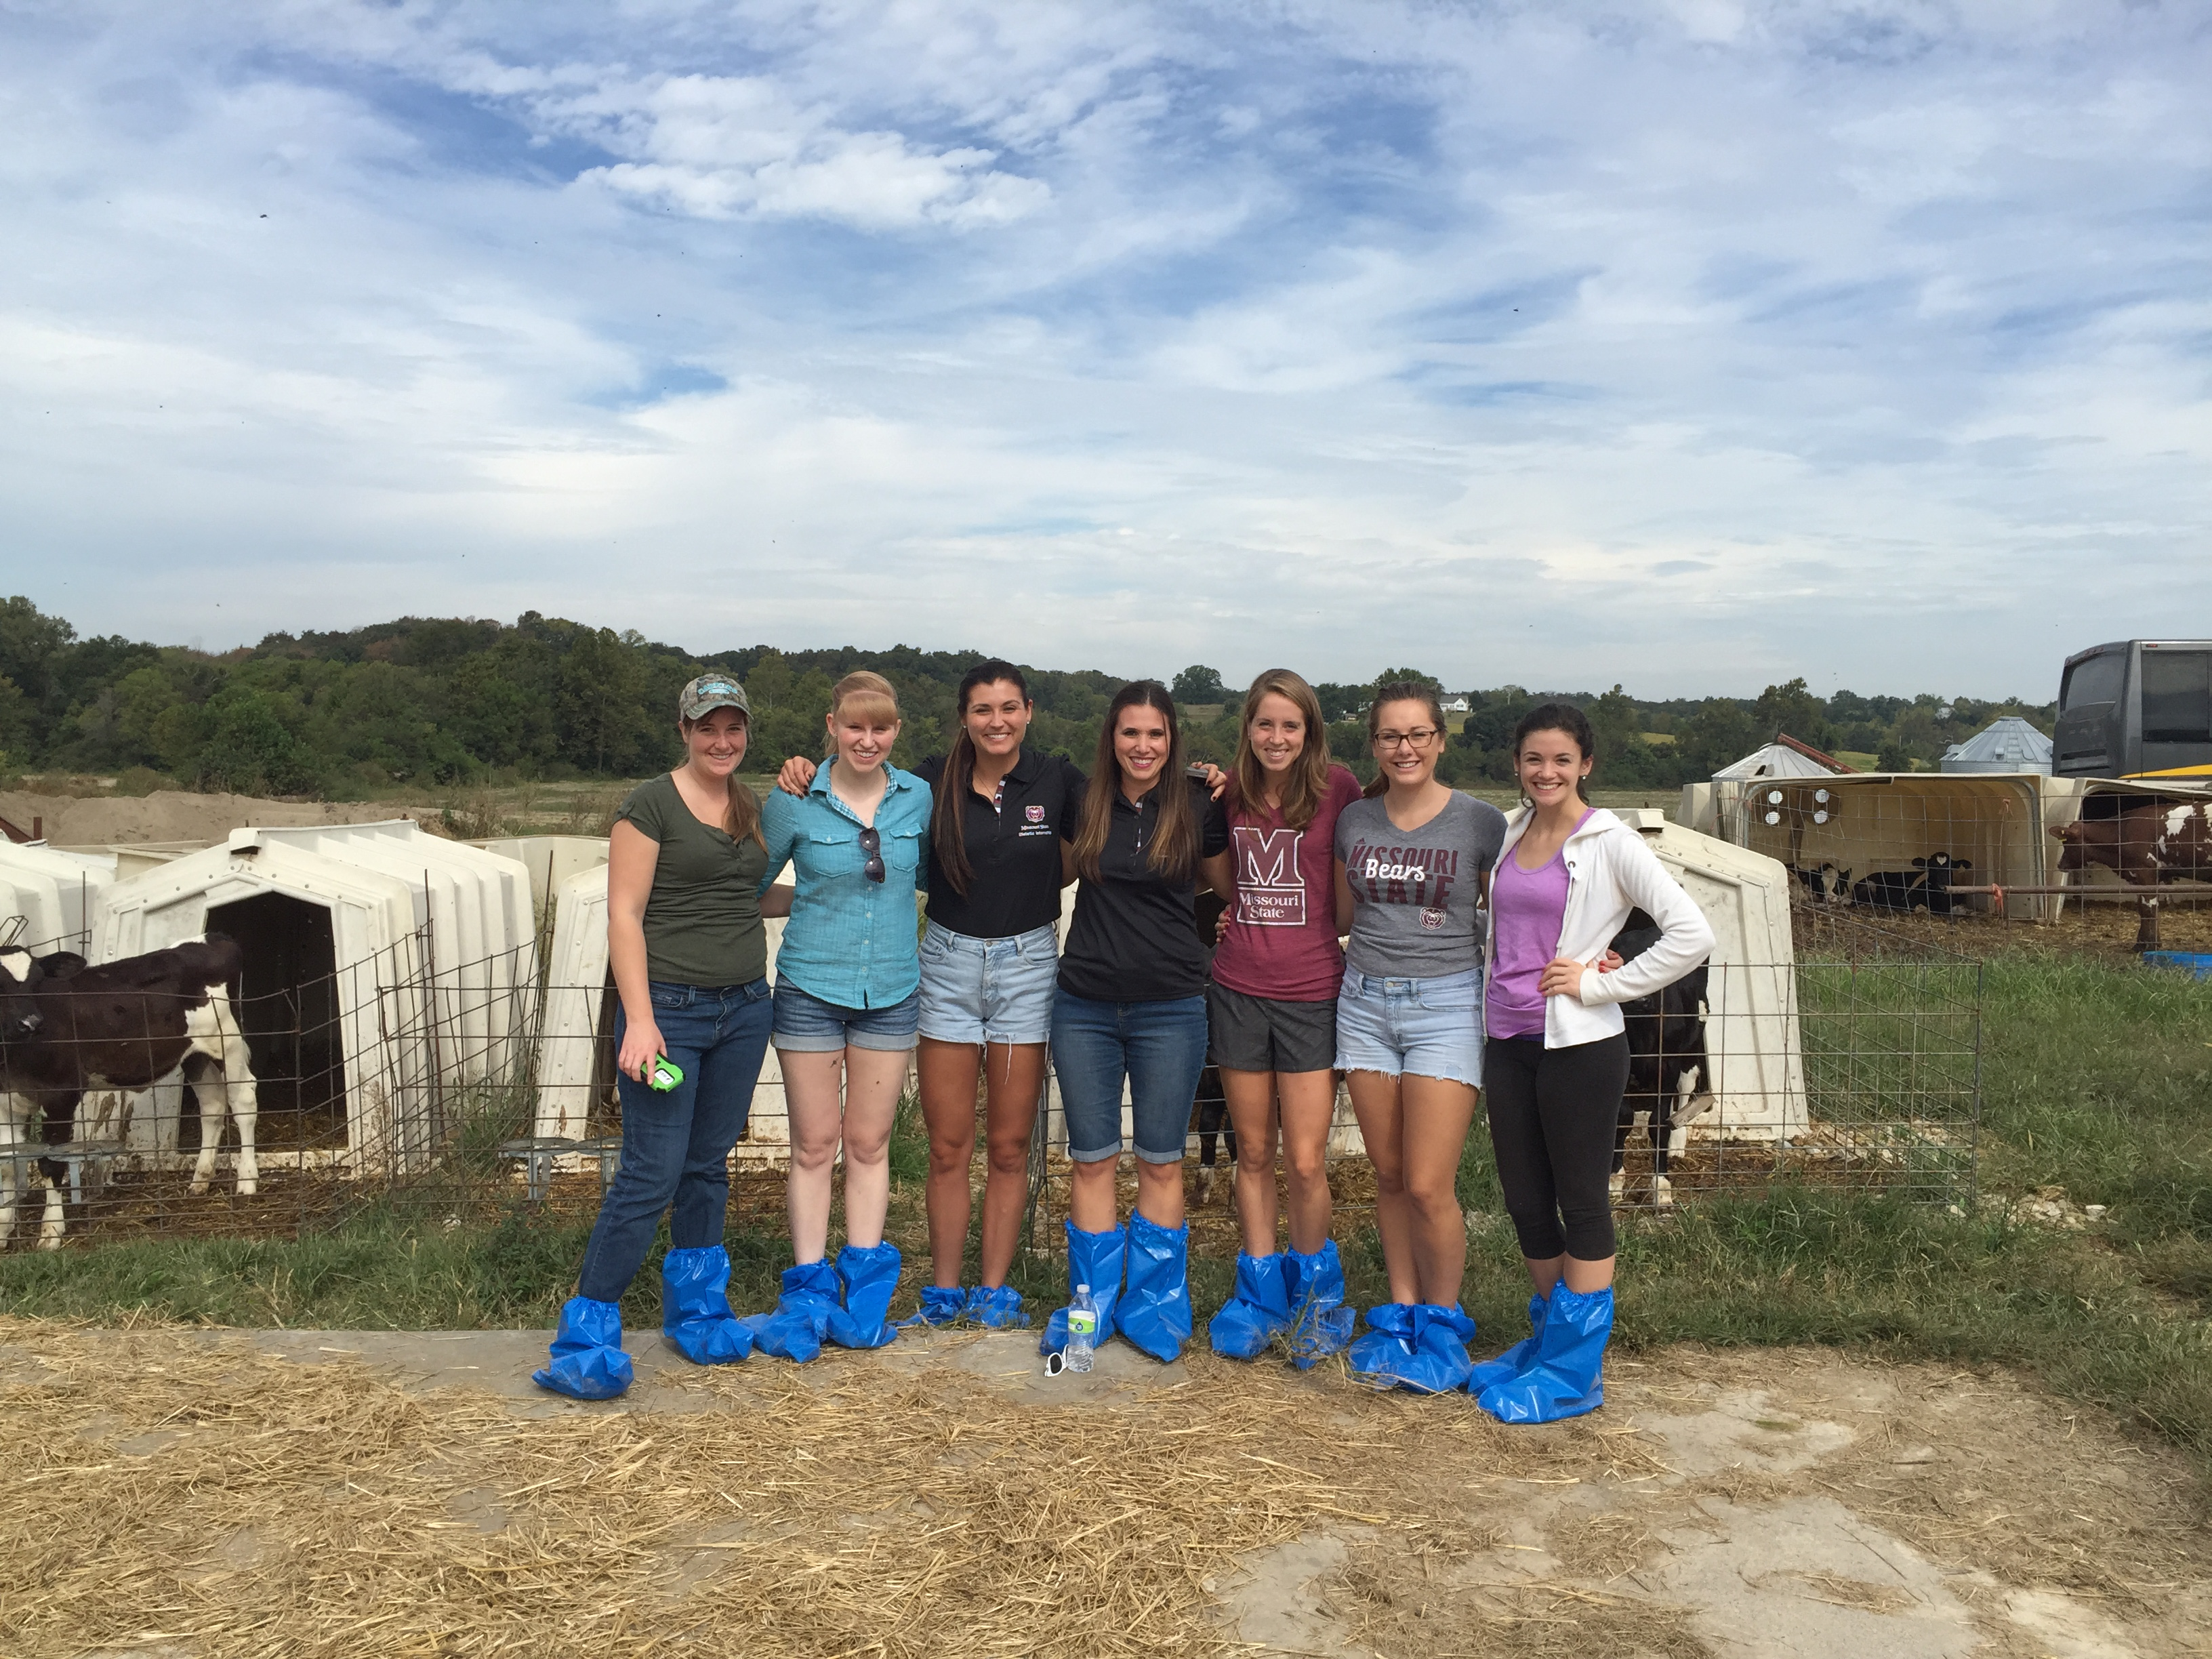 A Day at the Farm – Got Milk?